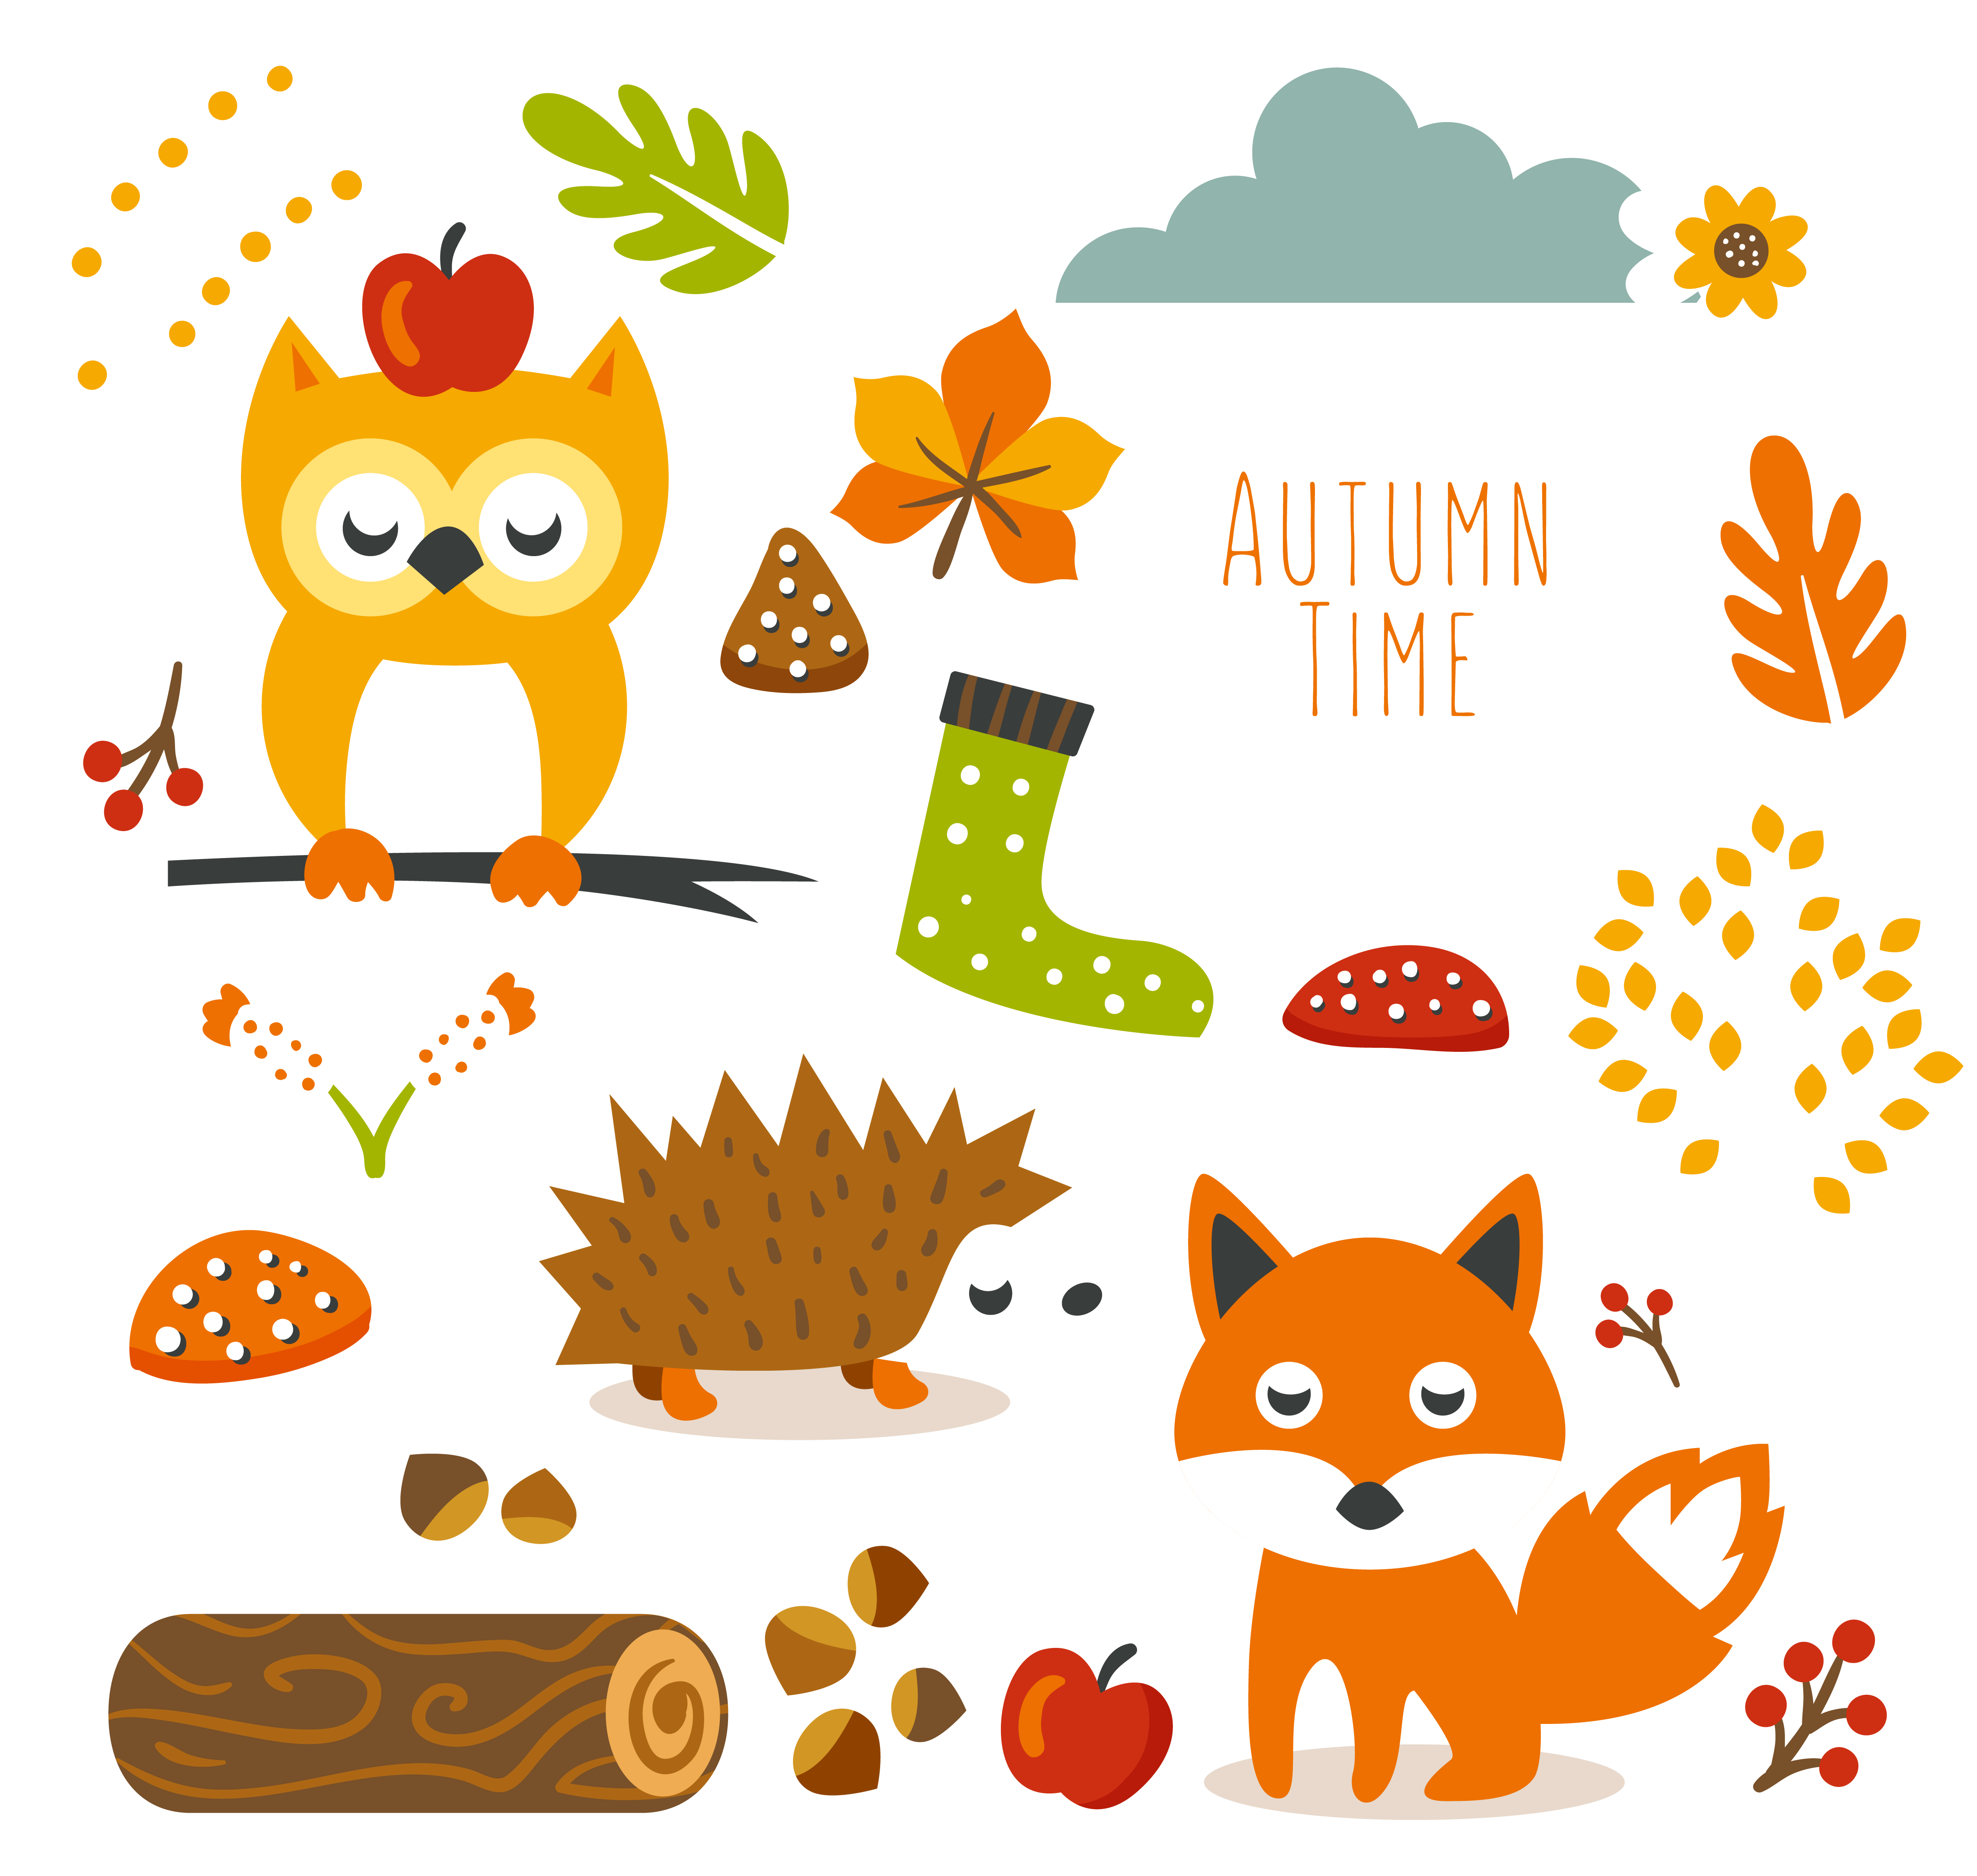 Planner clipart monthly planner. Autumn animal cliparts free